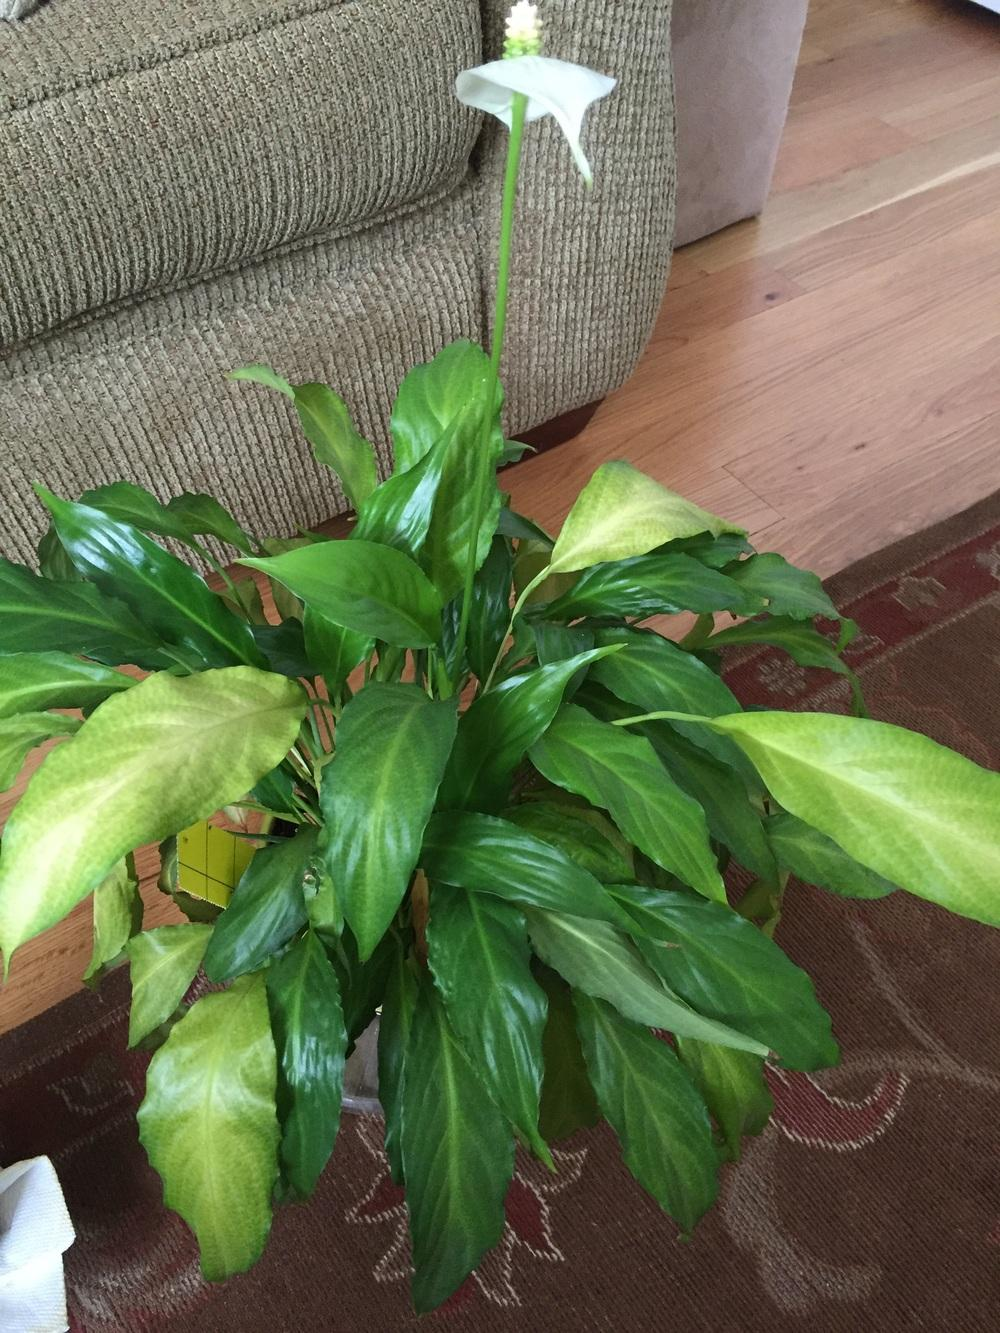 houseplants forum peace lily turning yellow. Black Bedroom Furniture Sets. Home Design Ideas